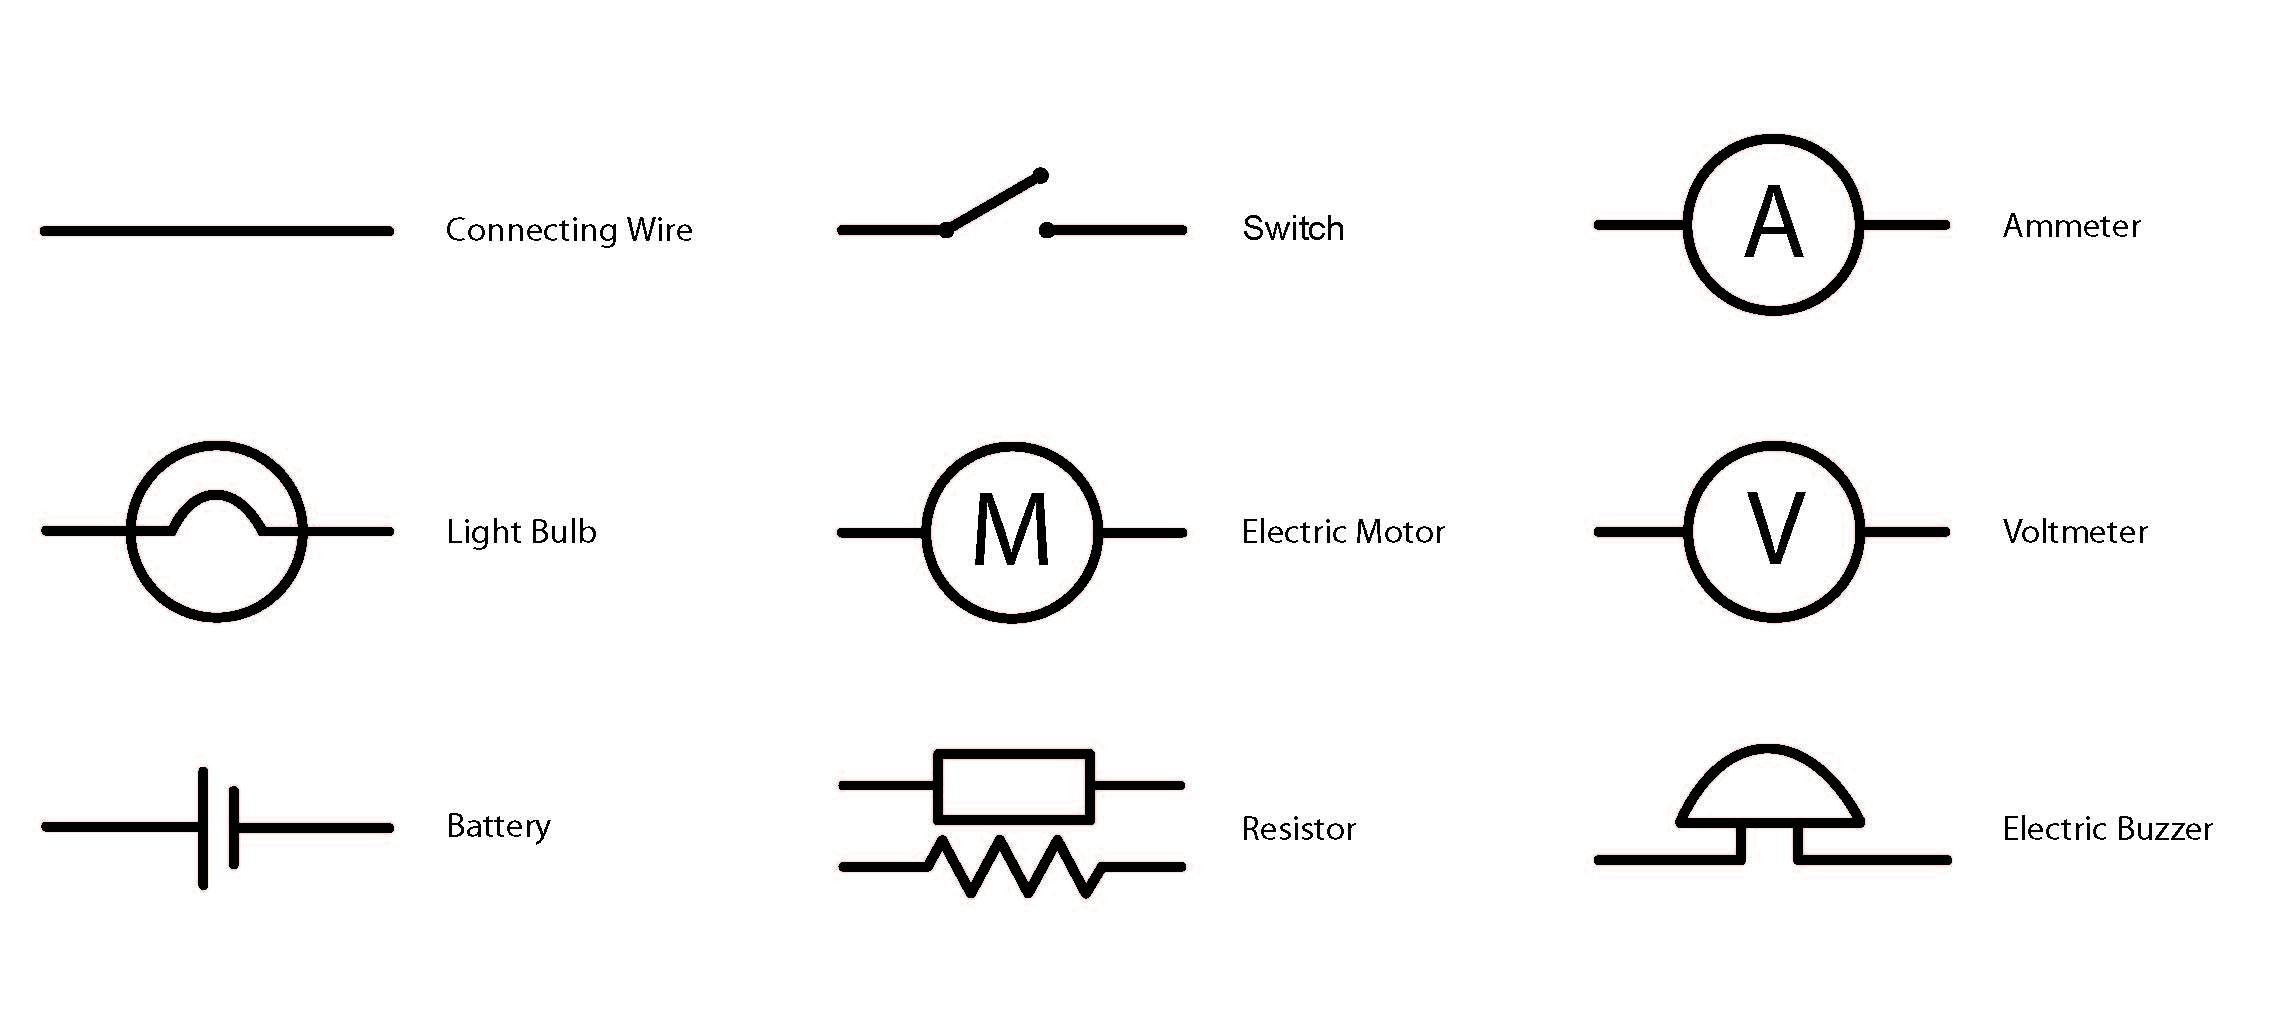 20 Luxury Fan Motor Wiring Diagram